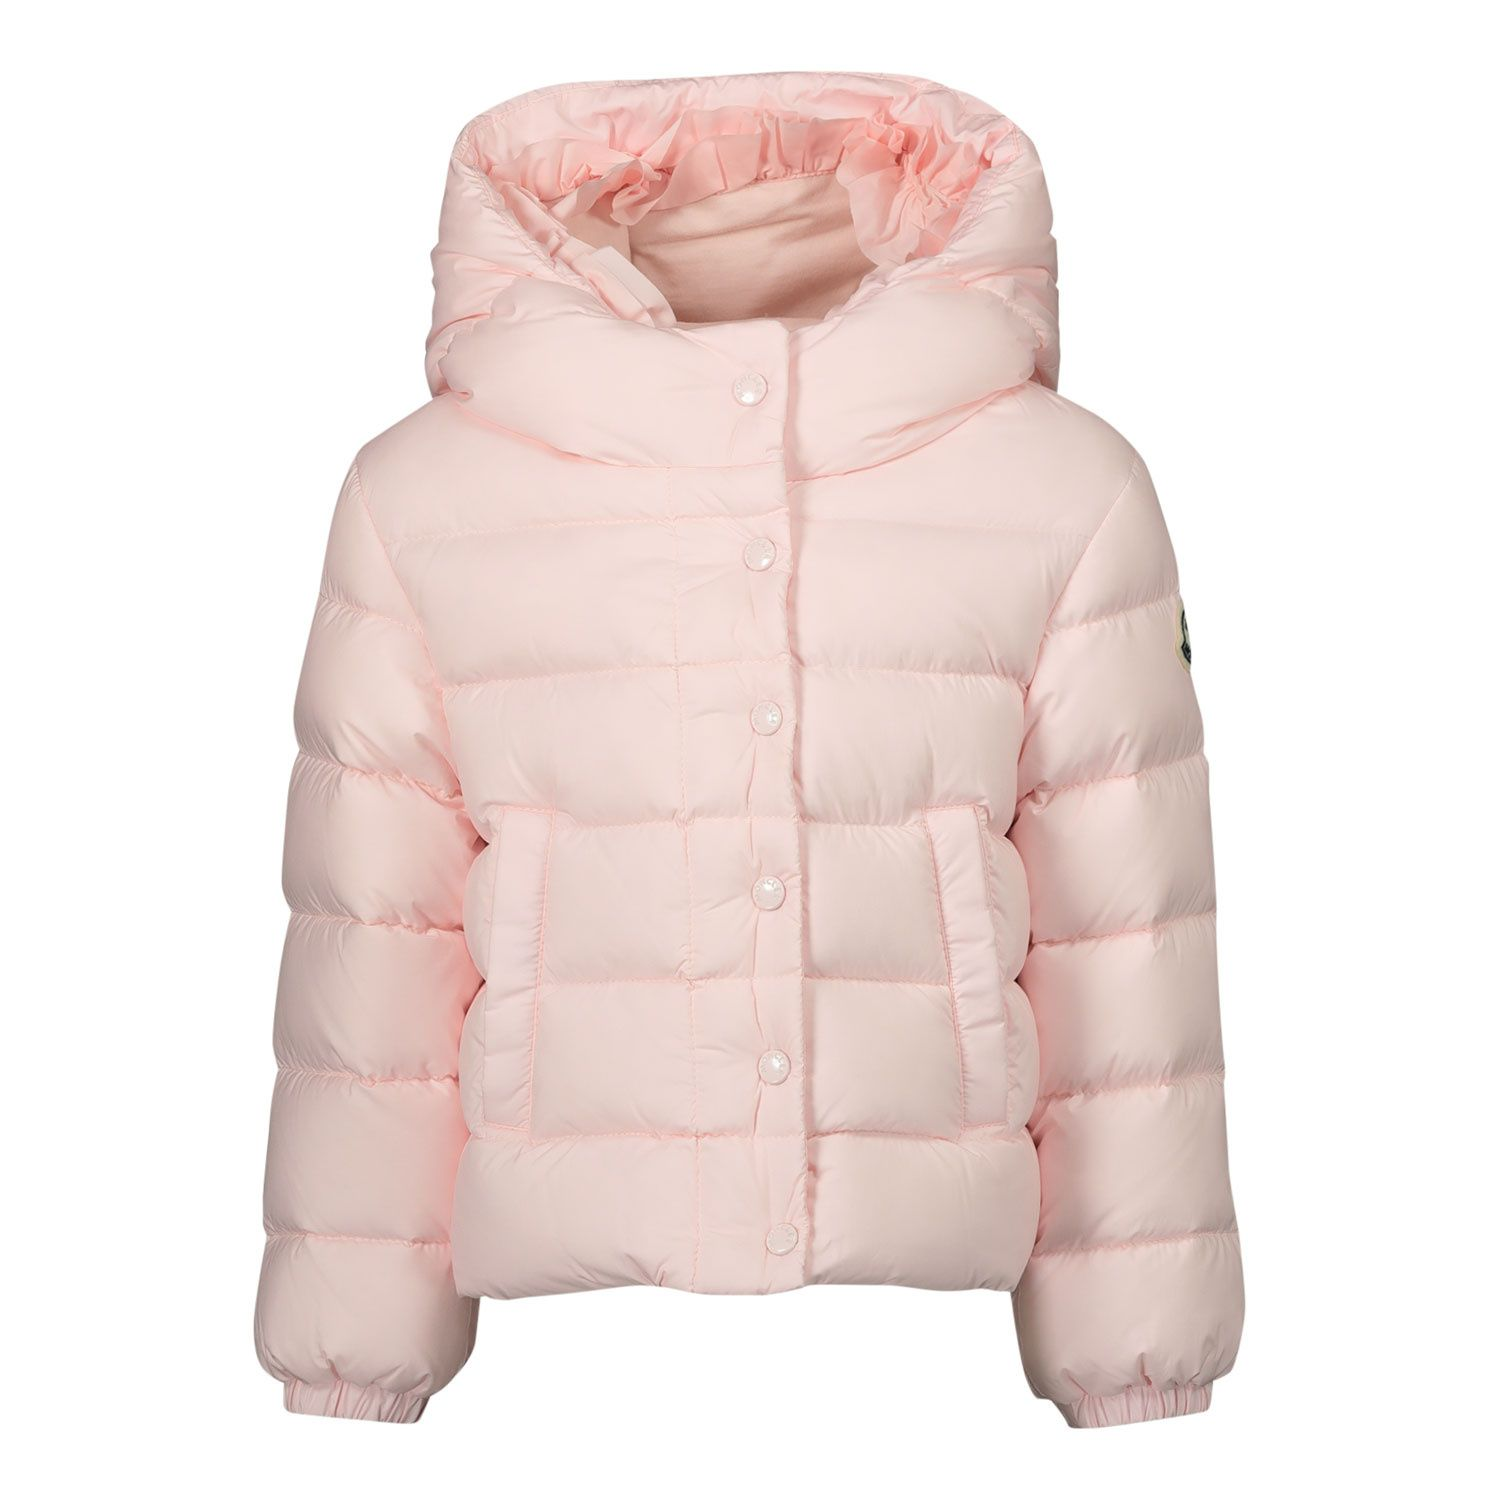 Picture of Moncler 1A52210 baby coat light pink